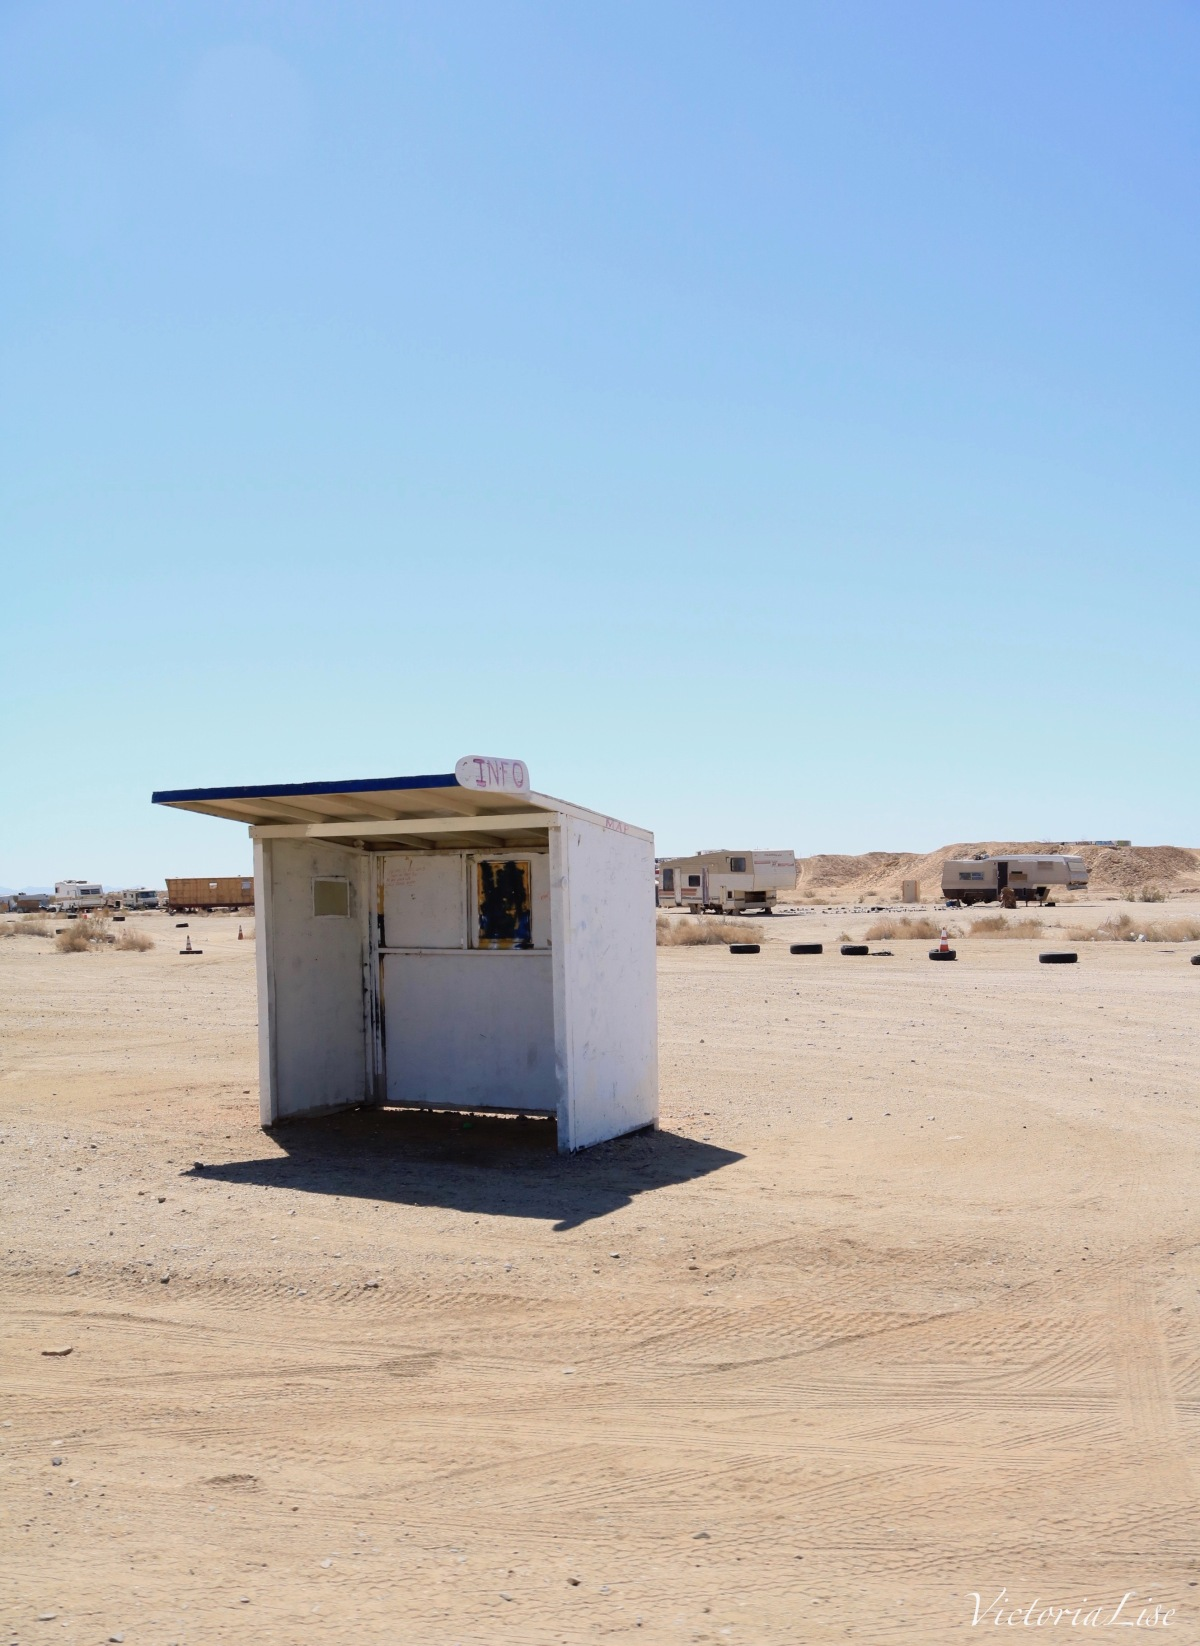 Slab City Info Booth, California. ©Victoria Lise 2018.